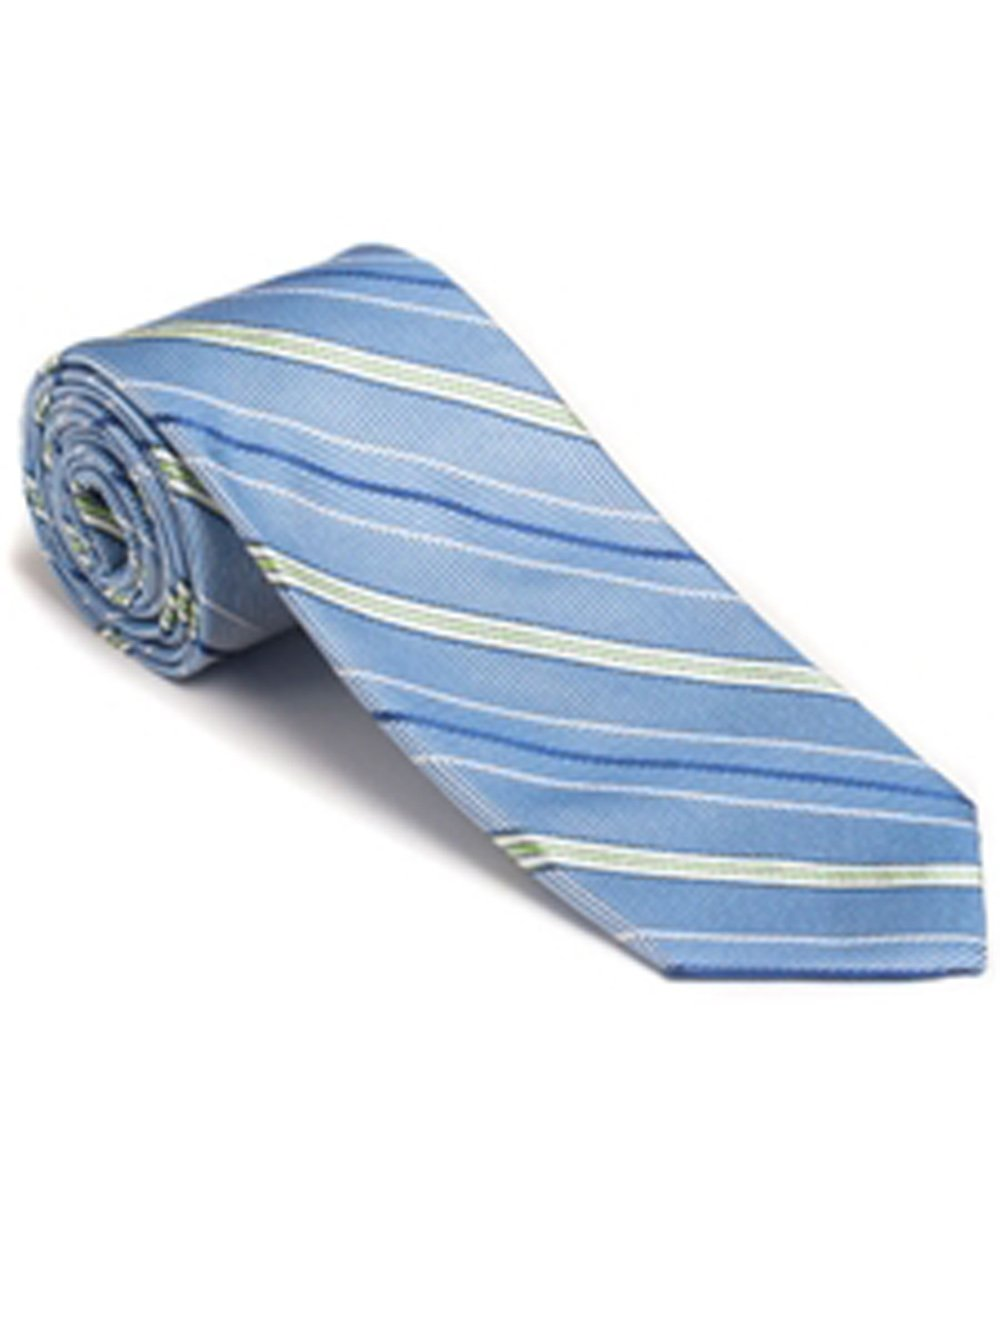 Robert Talbott Blue Stripe Summer Stripe Best of Class Tie